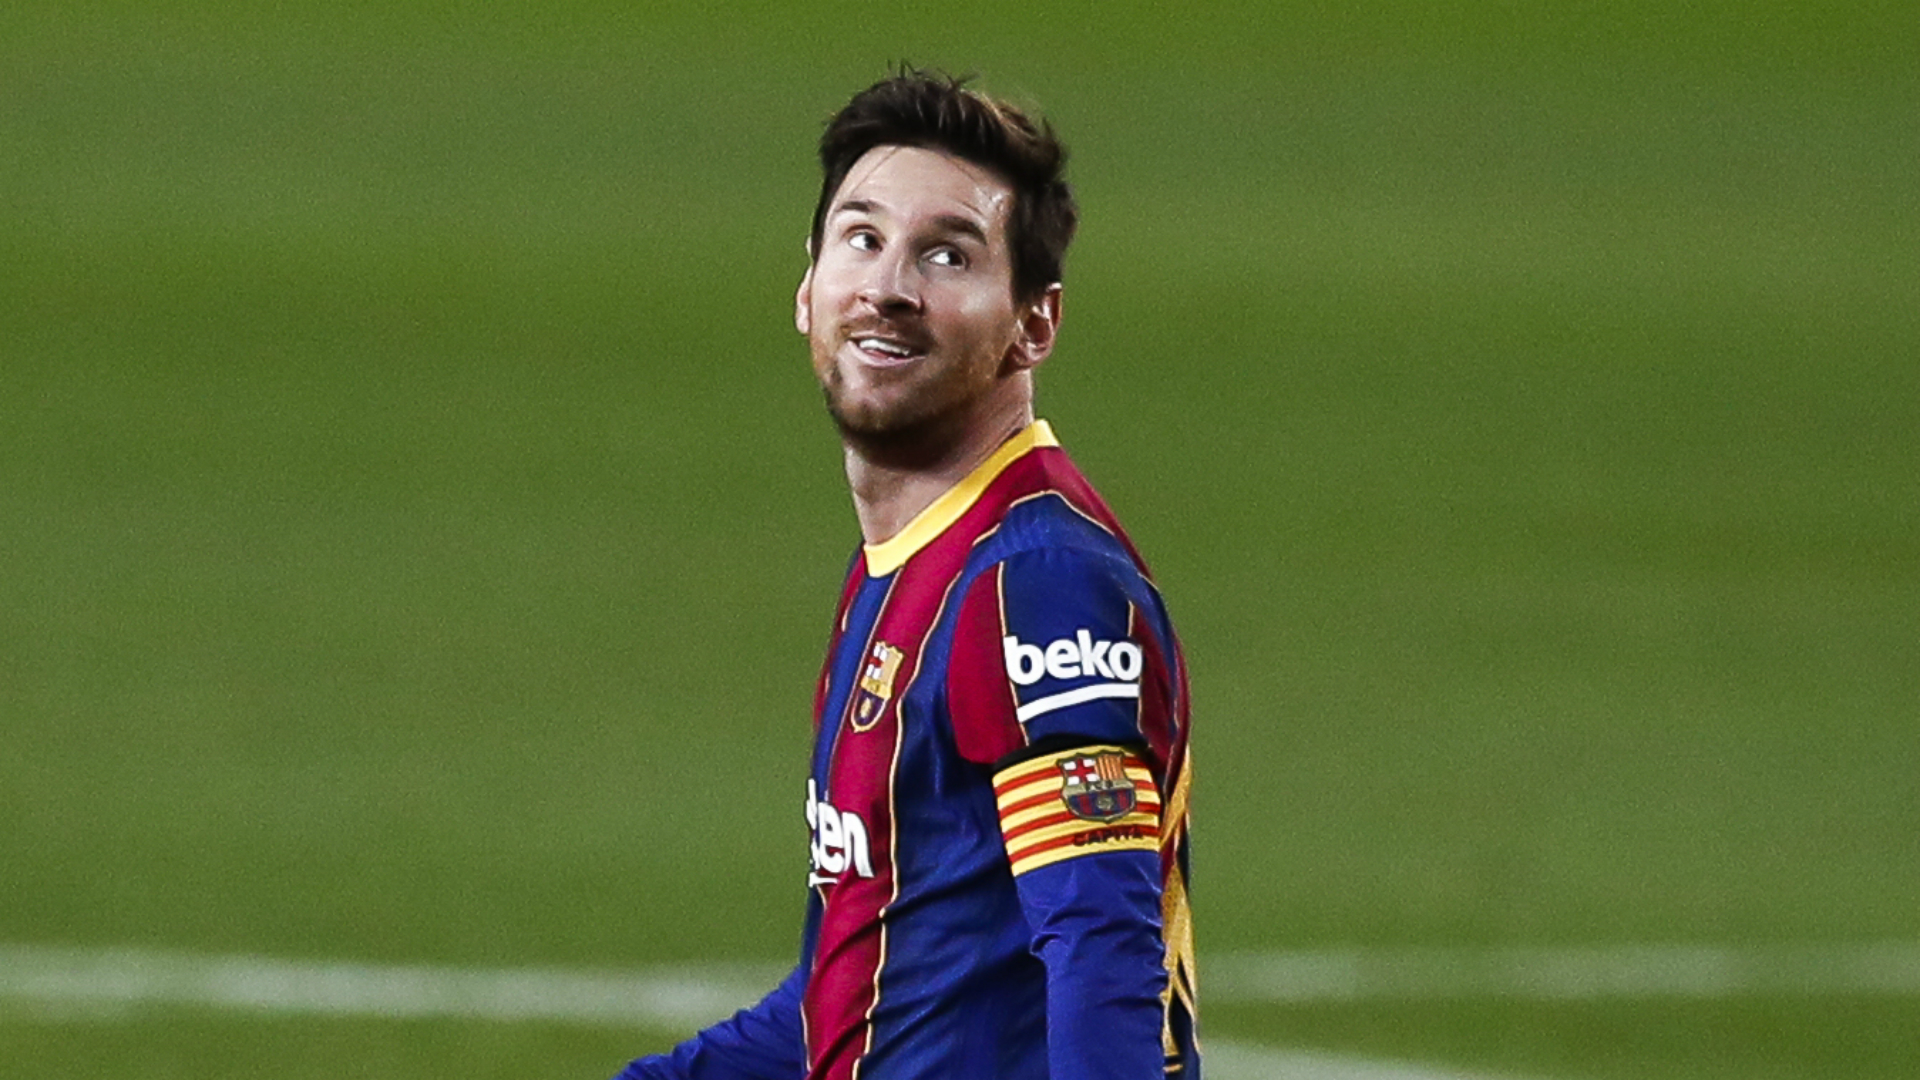 Messi was unhappy when I arrived at Barca but he is still the best - Koeman